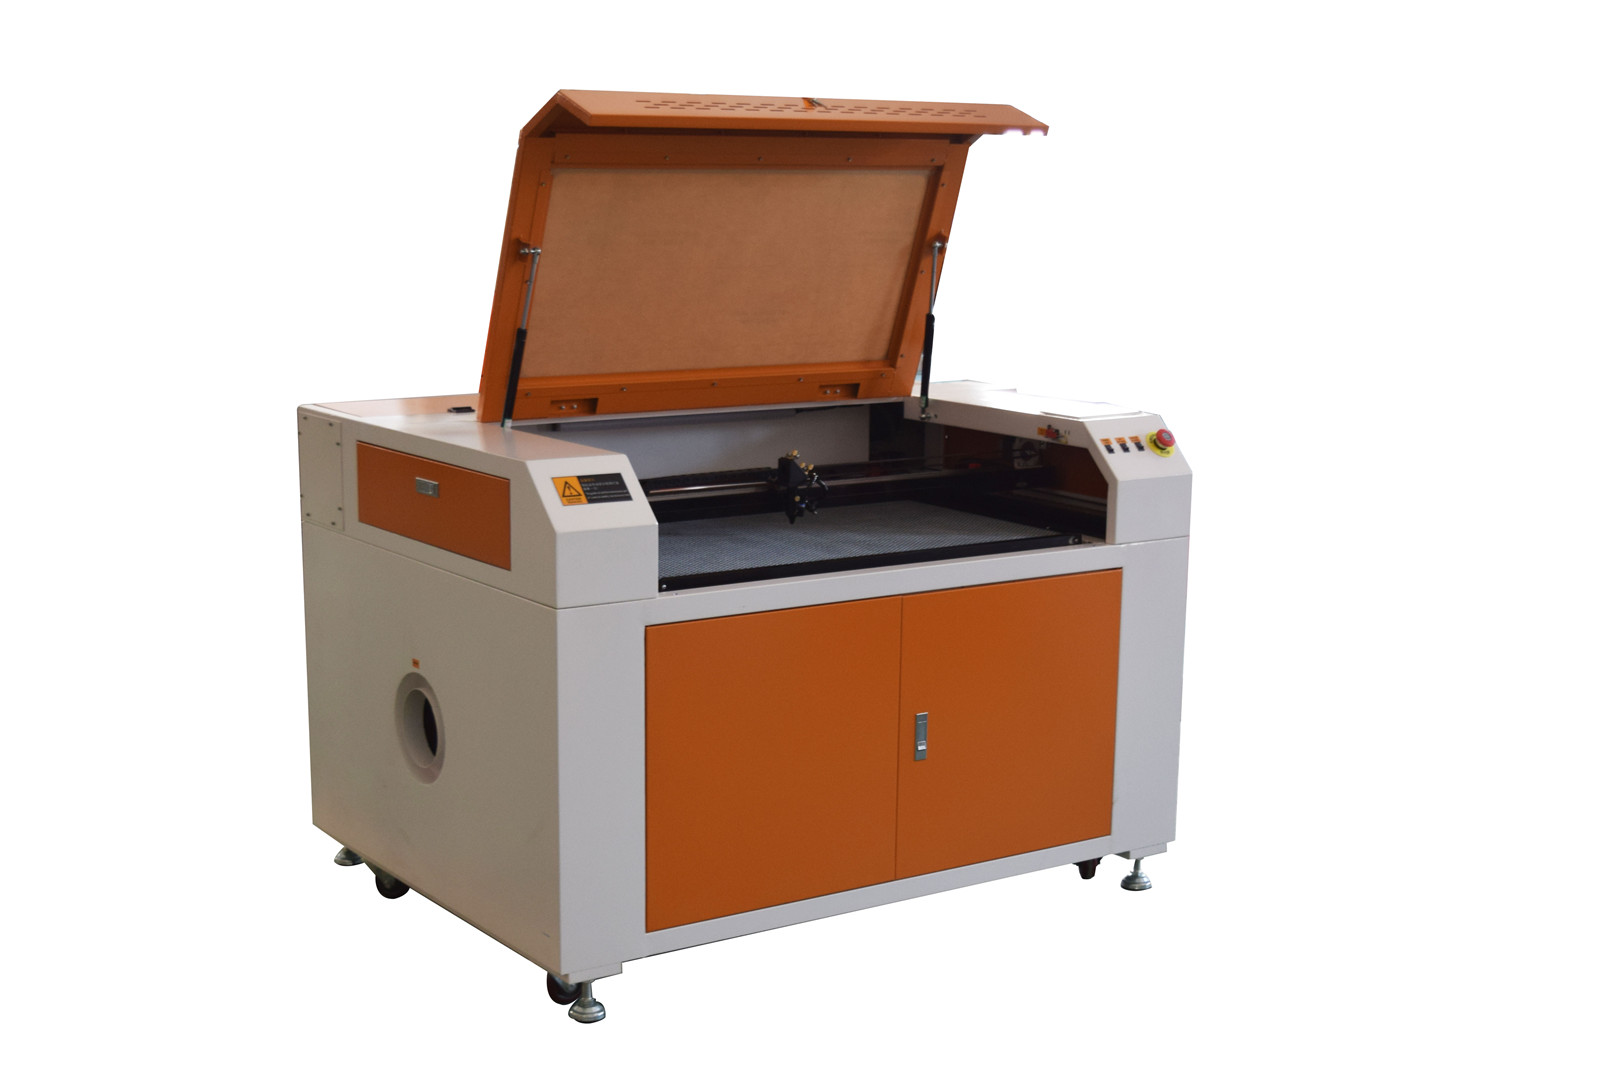 100W CO2 LASER ENGRAVER 900x600 ENGRAVING MACHINE KH9060-100W WOODWORKING/CRAFTS USB U-FLASH